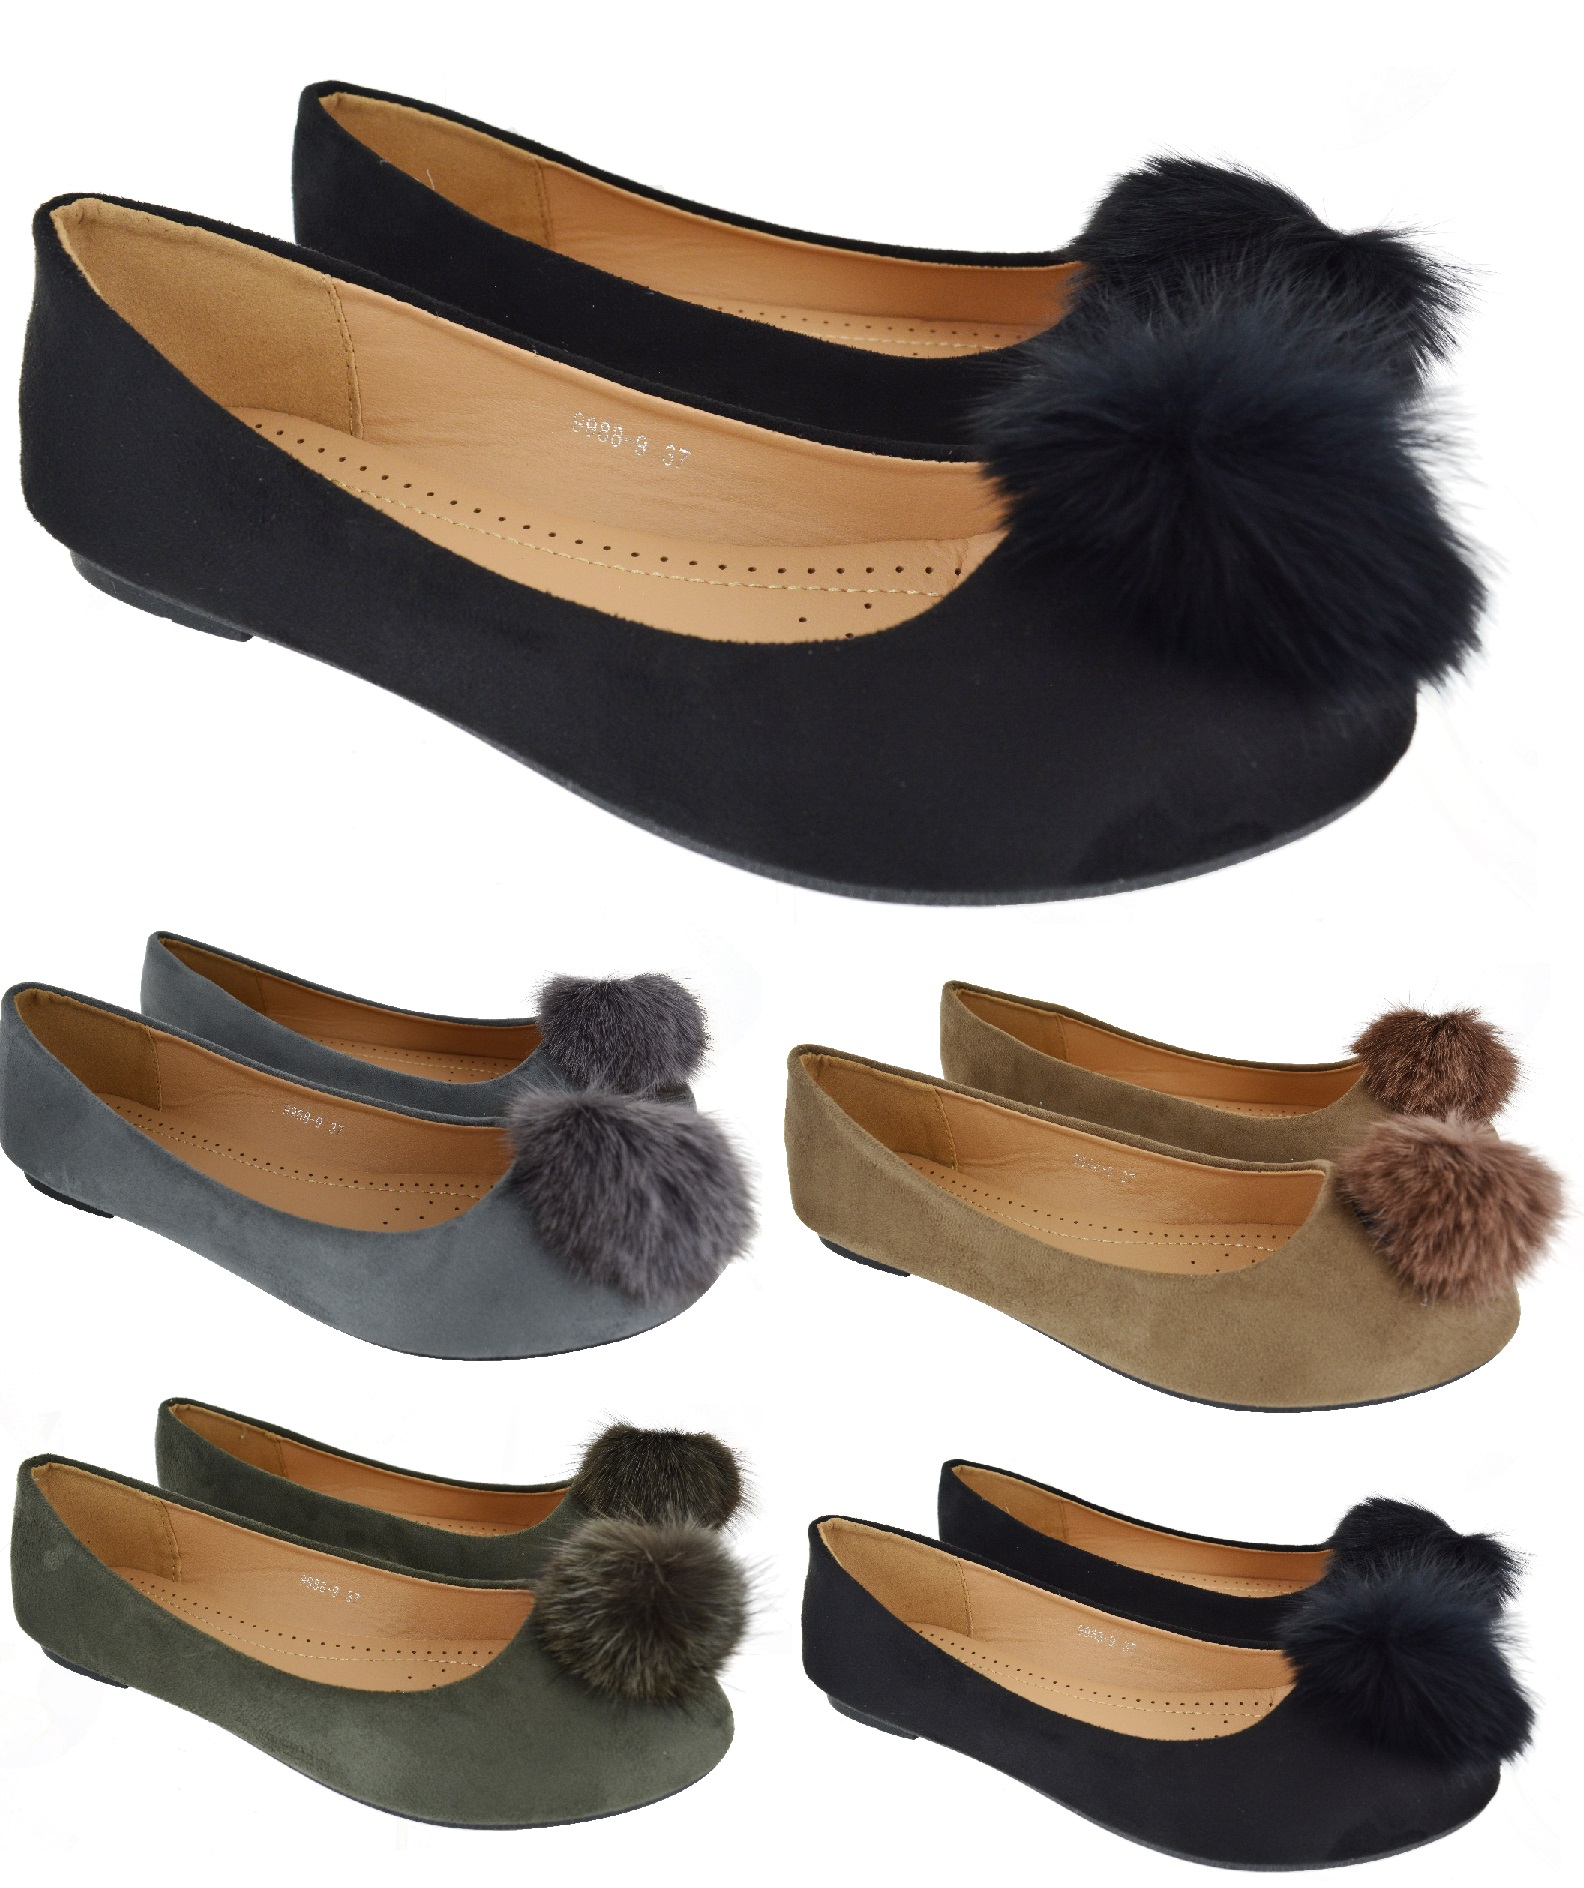 1a0fe99d11f2 Sentinel LADIES WOMENS FLAT PUMPS BALLET SLIP ON FLUFFY FUR BALL POM POM  DOLLY SHOES SIZE